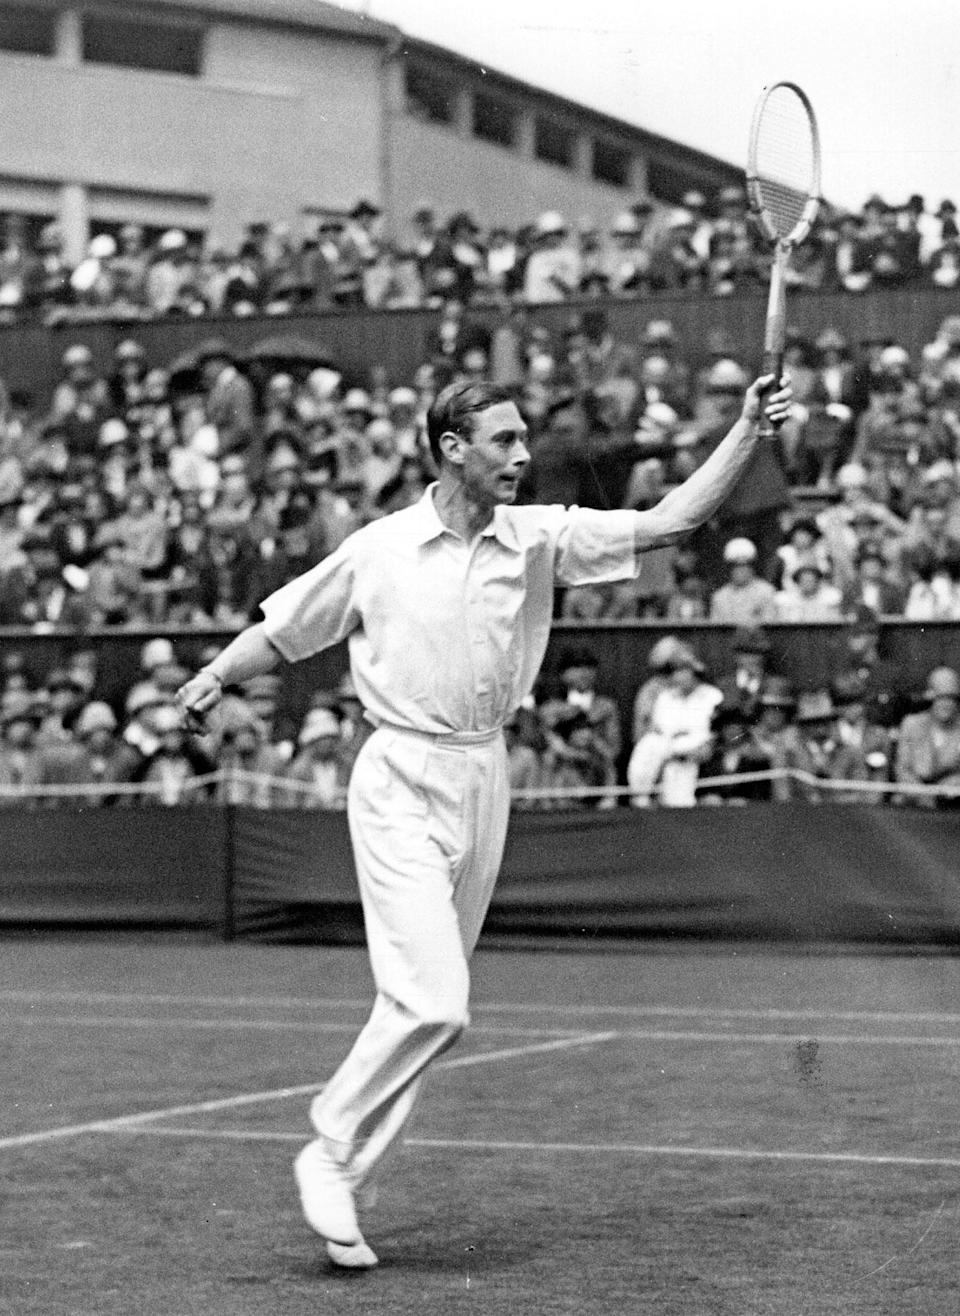 The Duke of York, later King George VI, playing at Wimbledon in 1926.